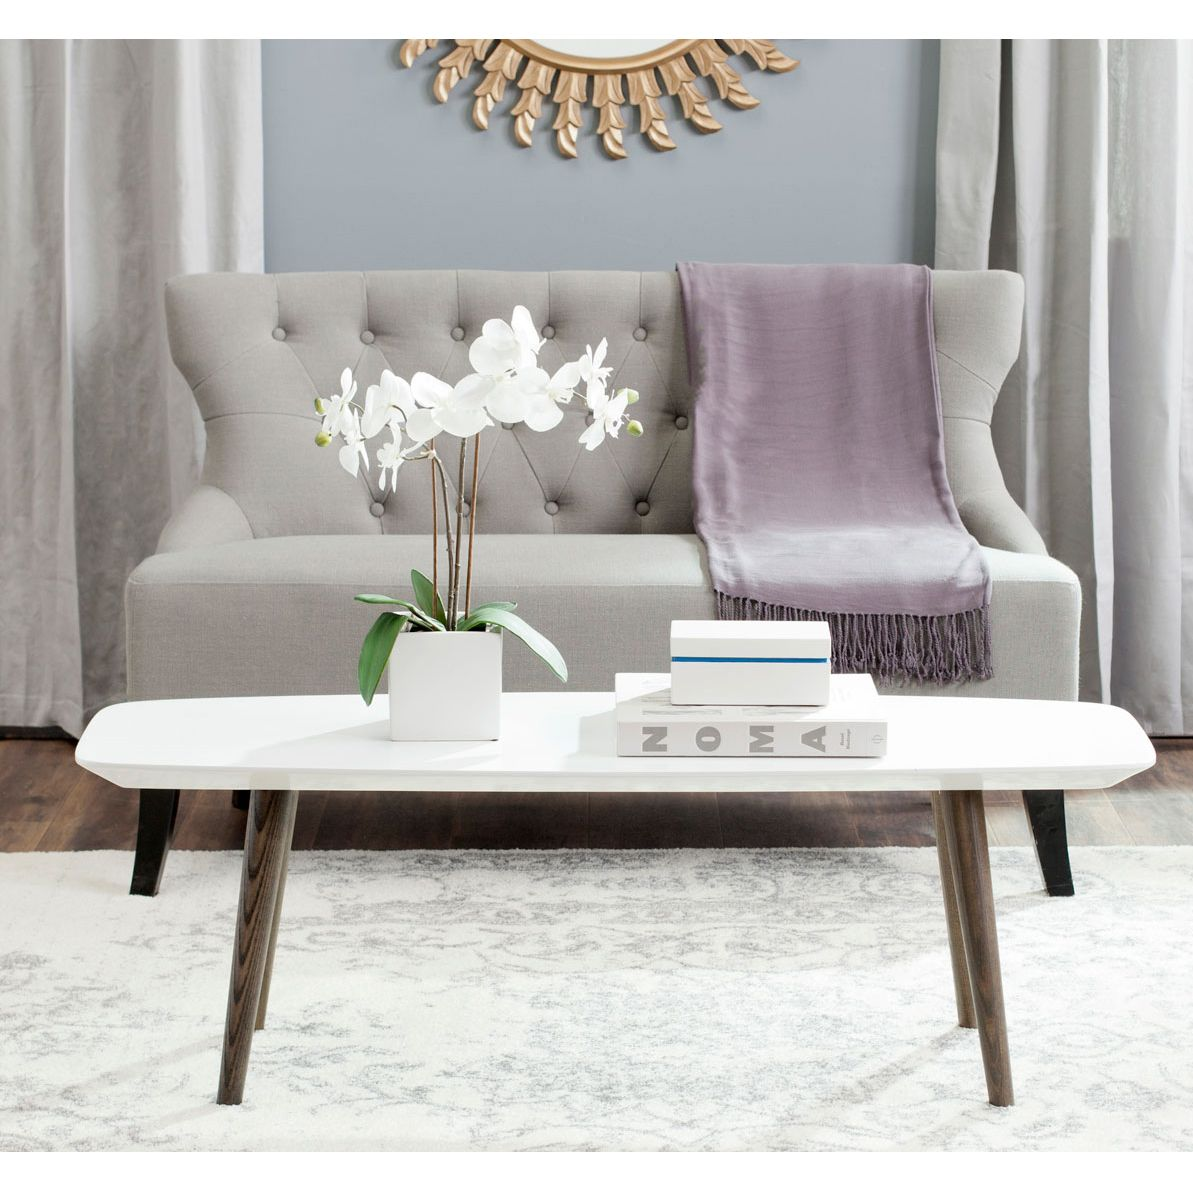 Clairemont Coffee Table At The Peak Coffee Table Dot Bo Furnishings Pinterest